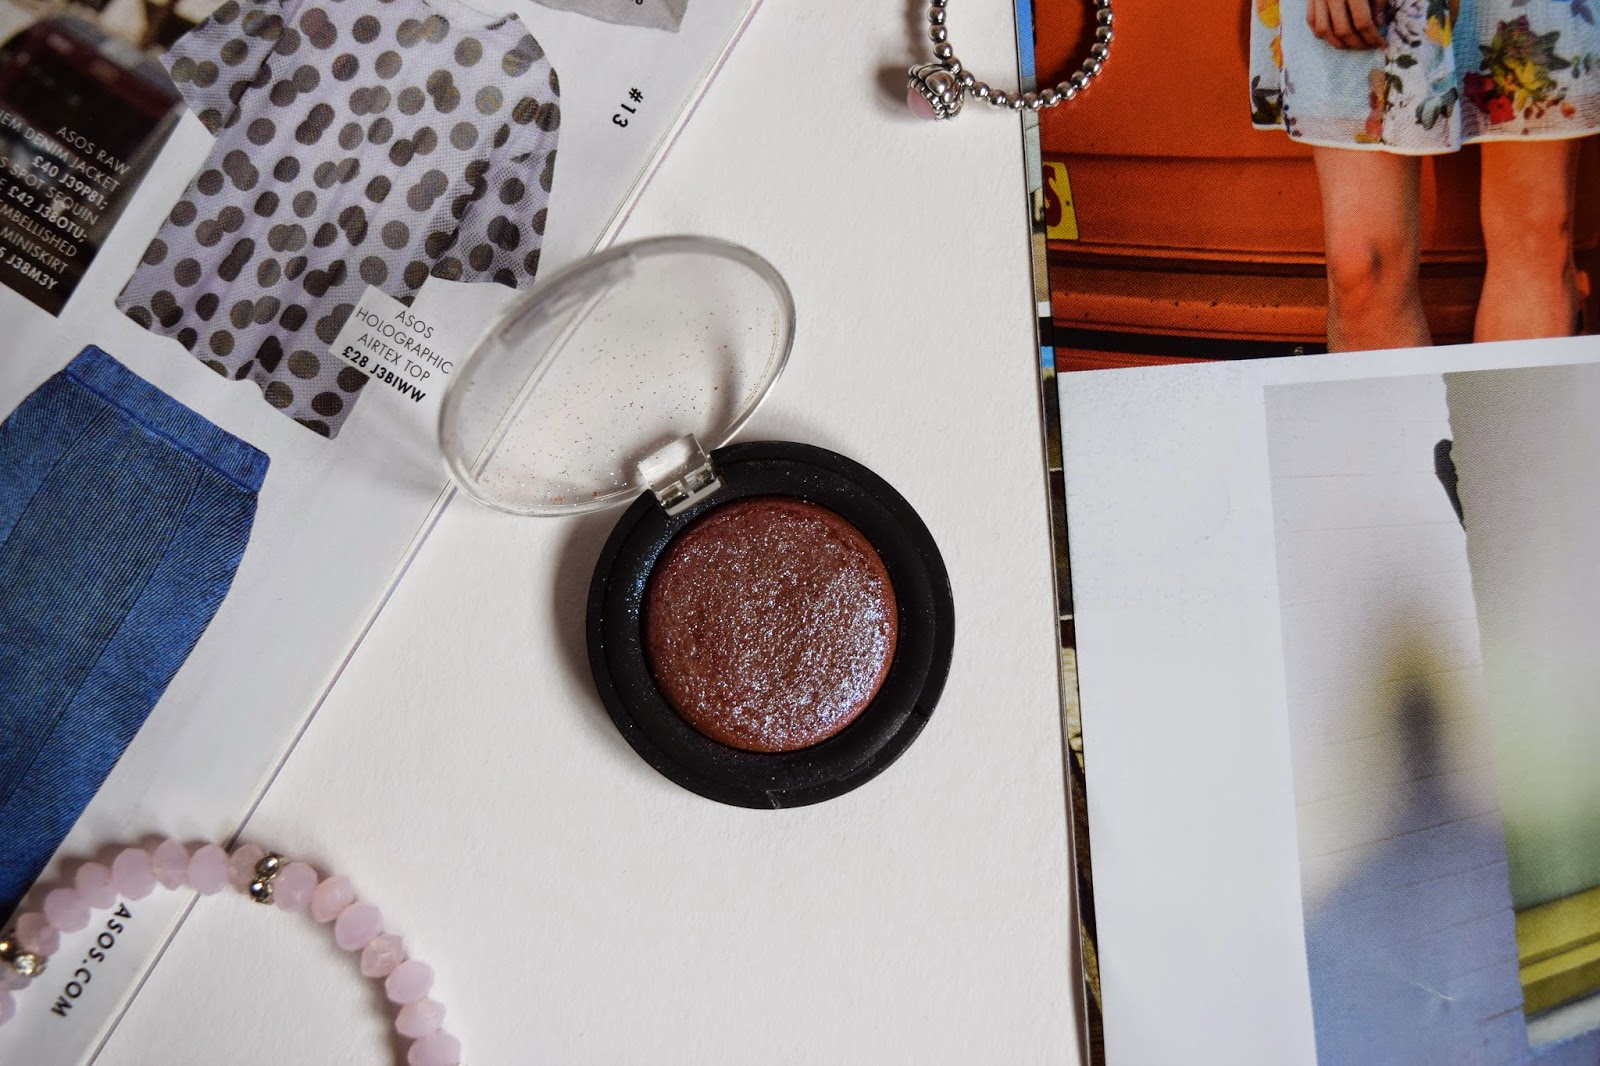 PINK EYESHADOW SINGLE LYING FLAT SURROUNDED BY MAGAZINES AND JEWELRY